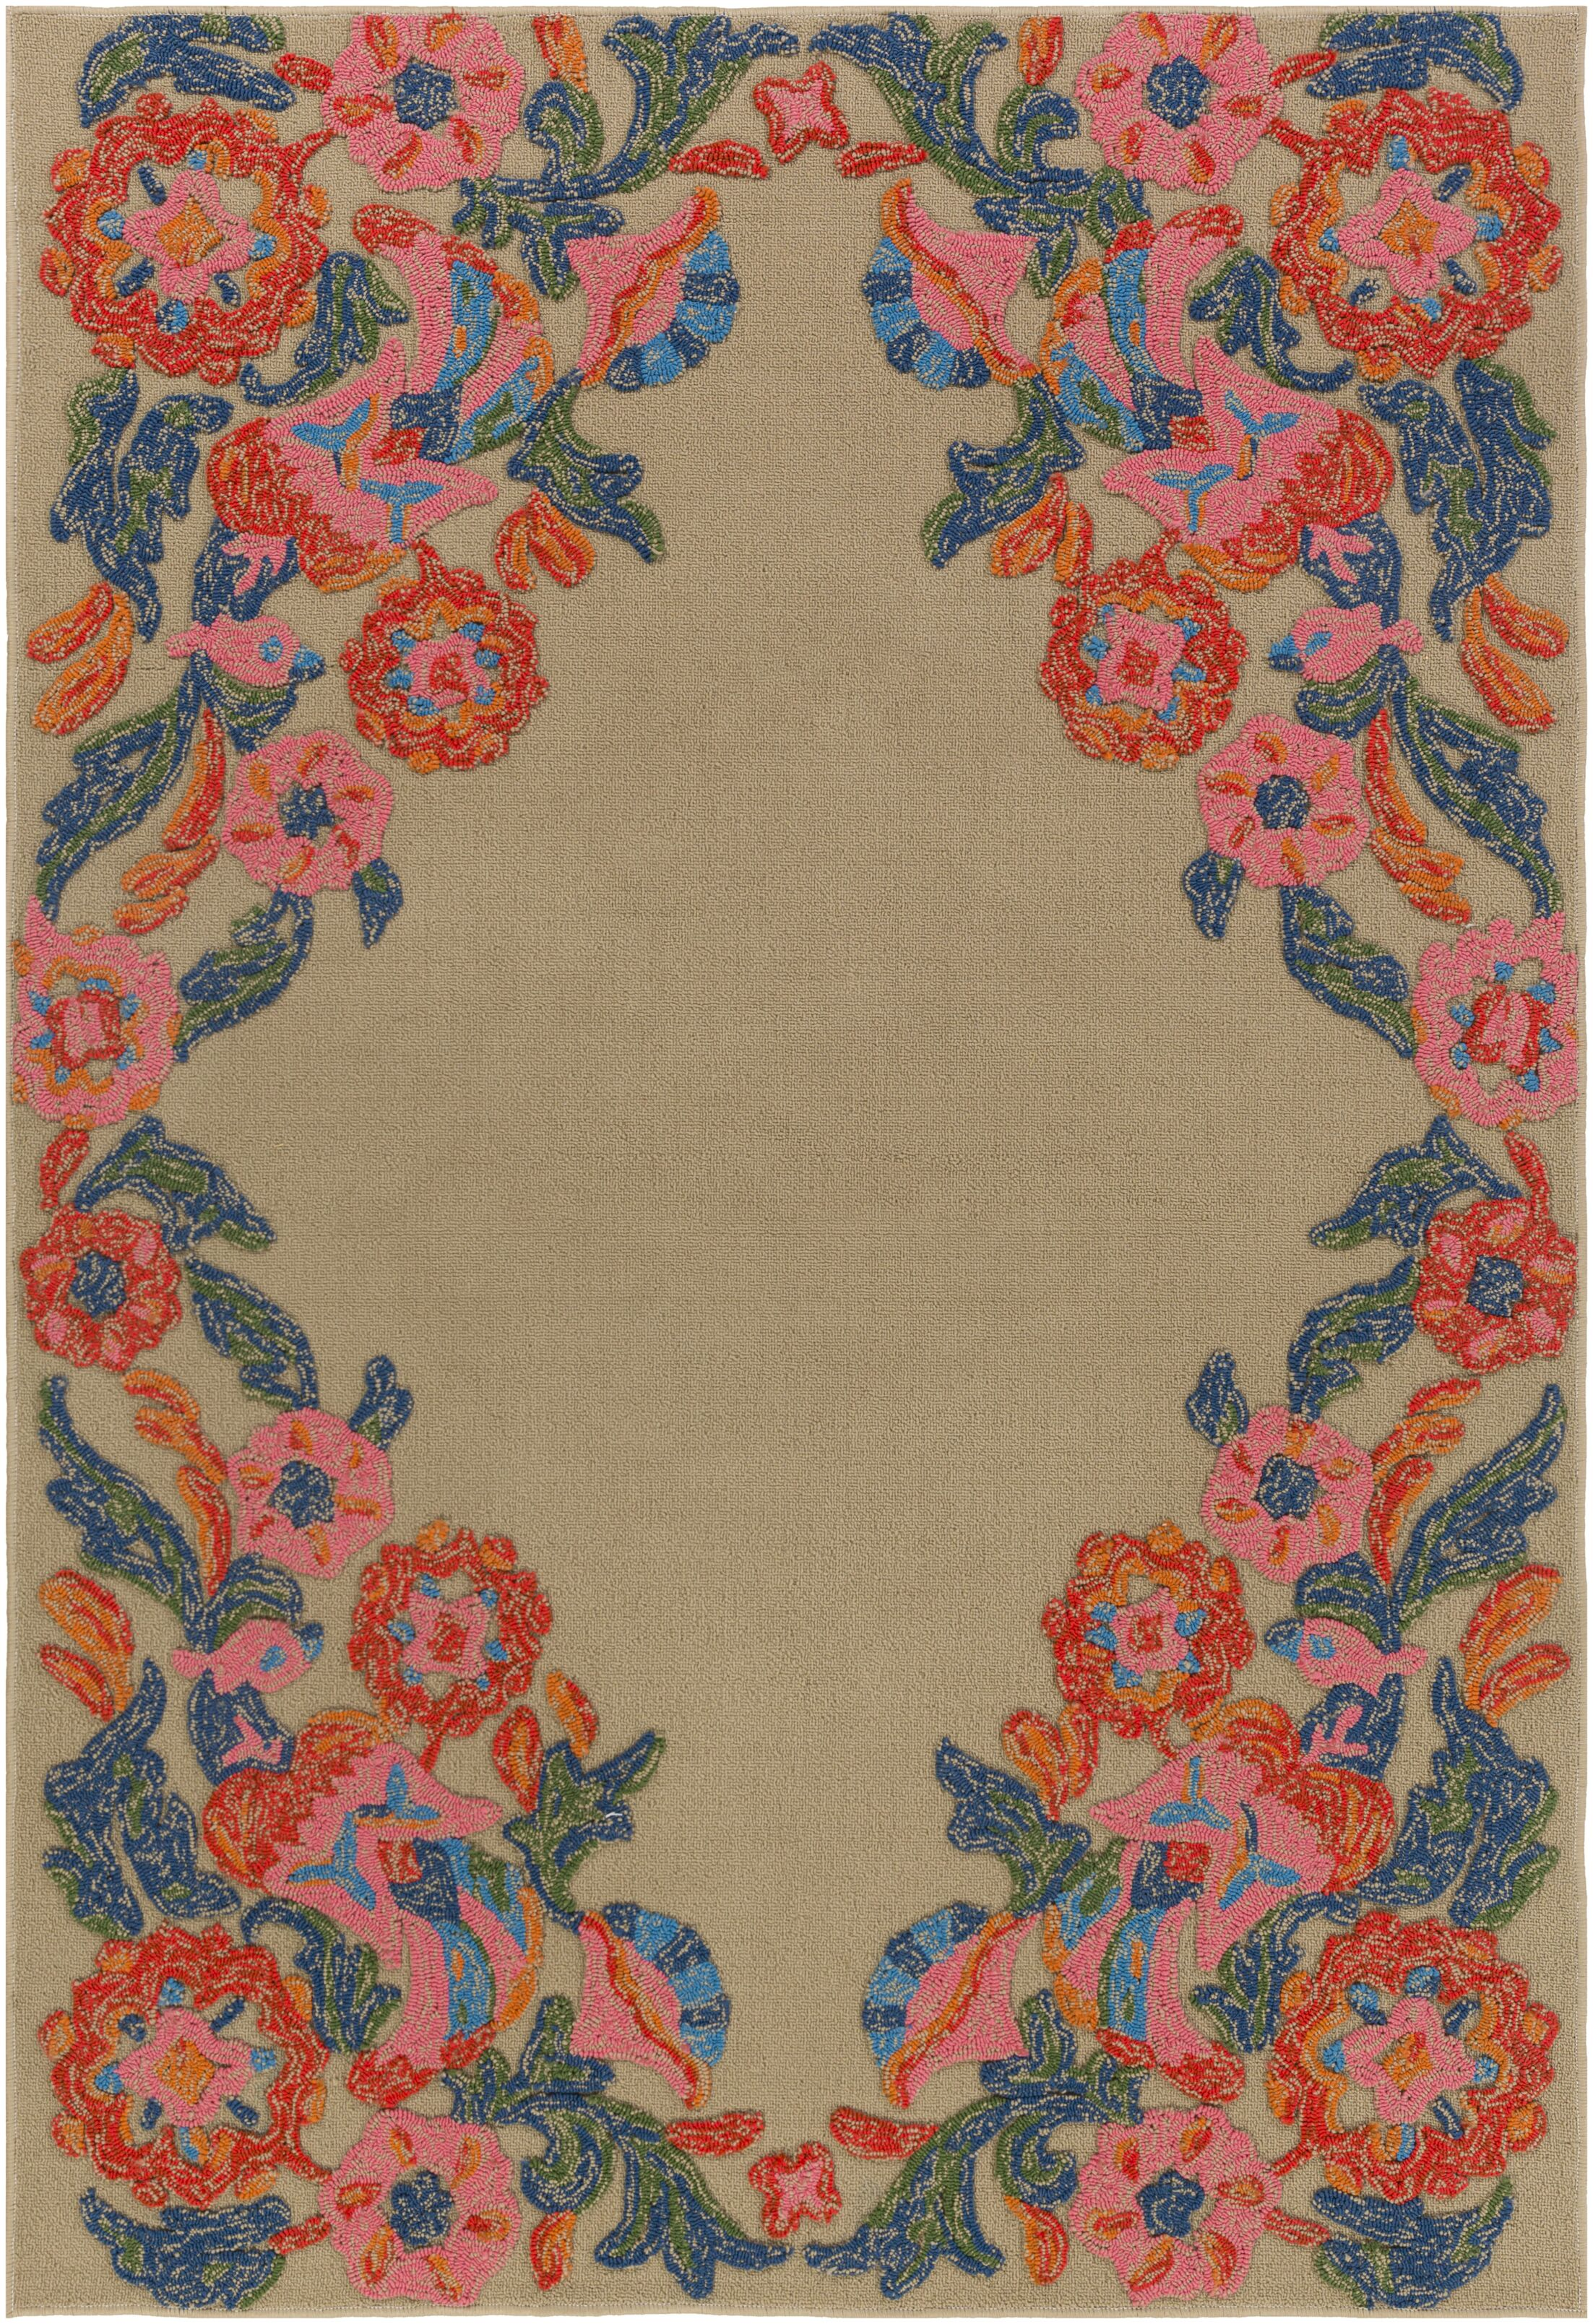 Dimaggio Hand-Tufted Carnation Pink/Navy Blue Indoor/Outdoor Area Rug Rug Size: Rectangle 4' x 6'